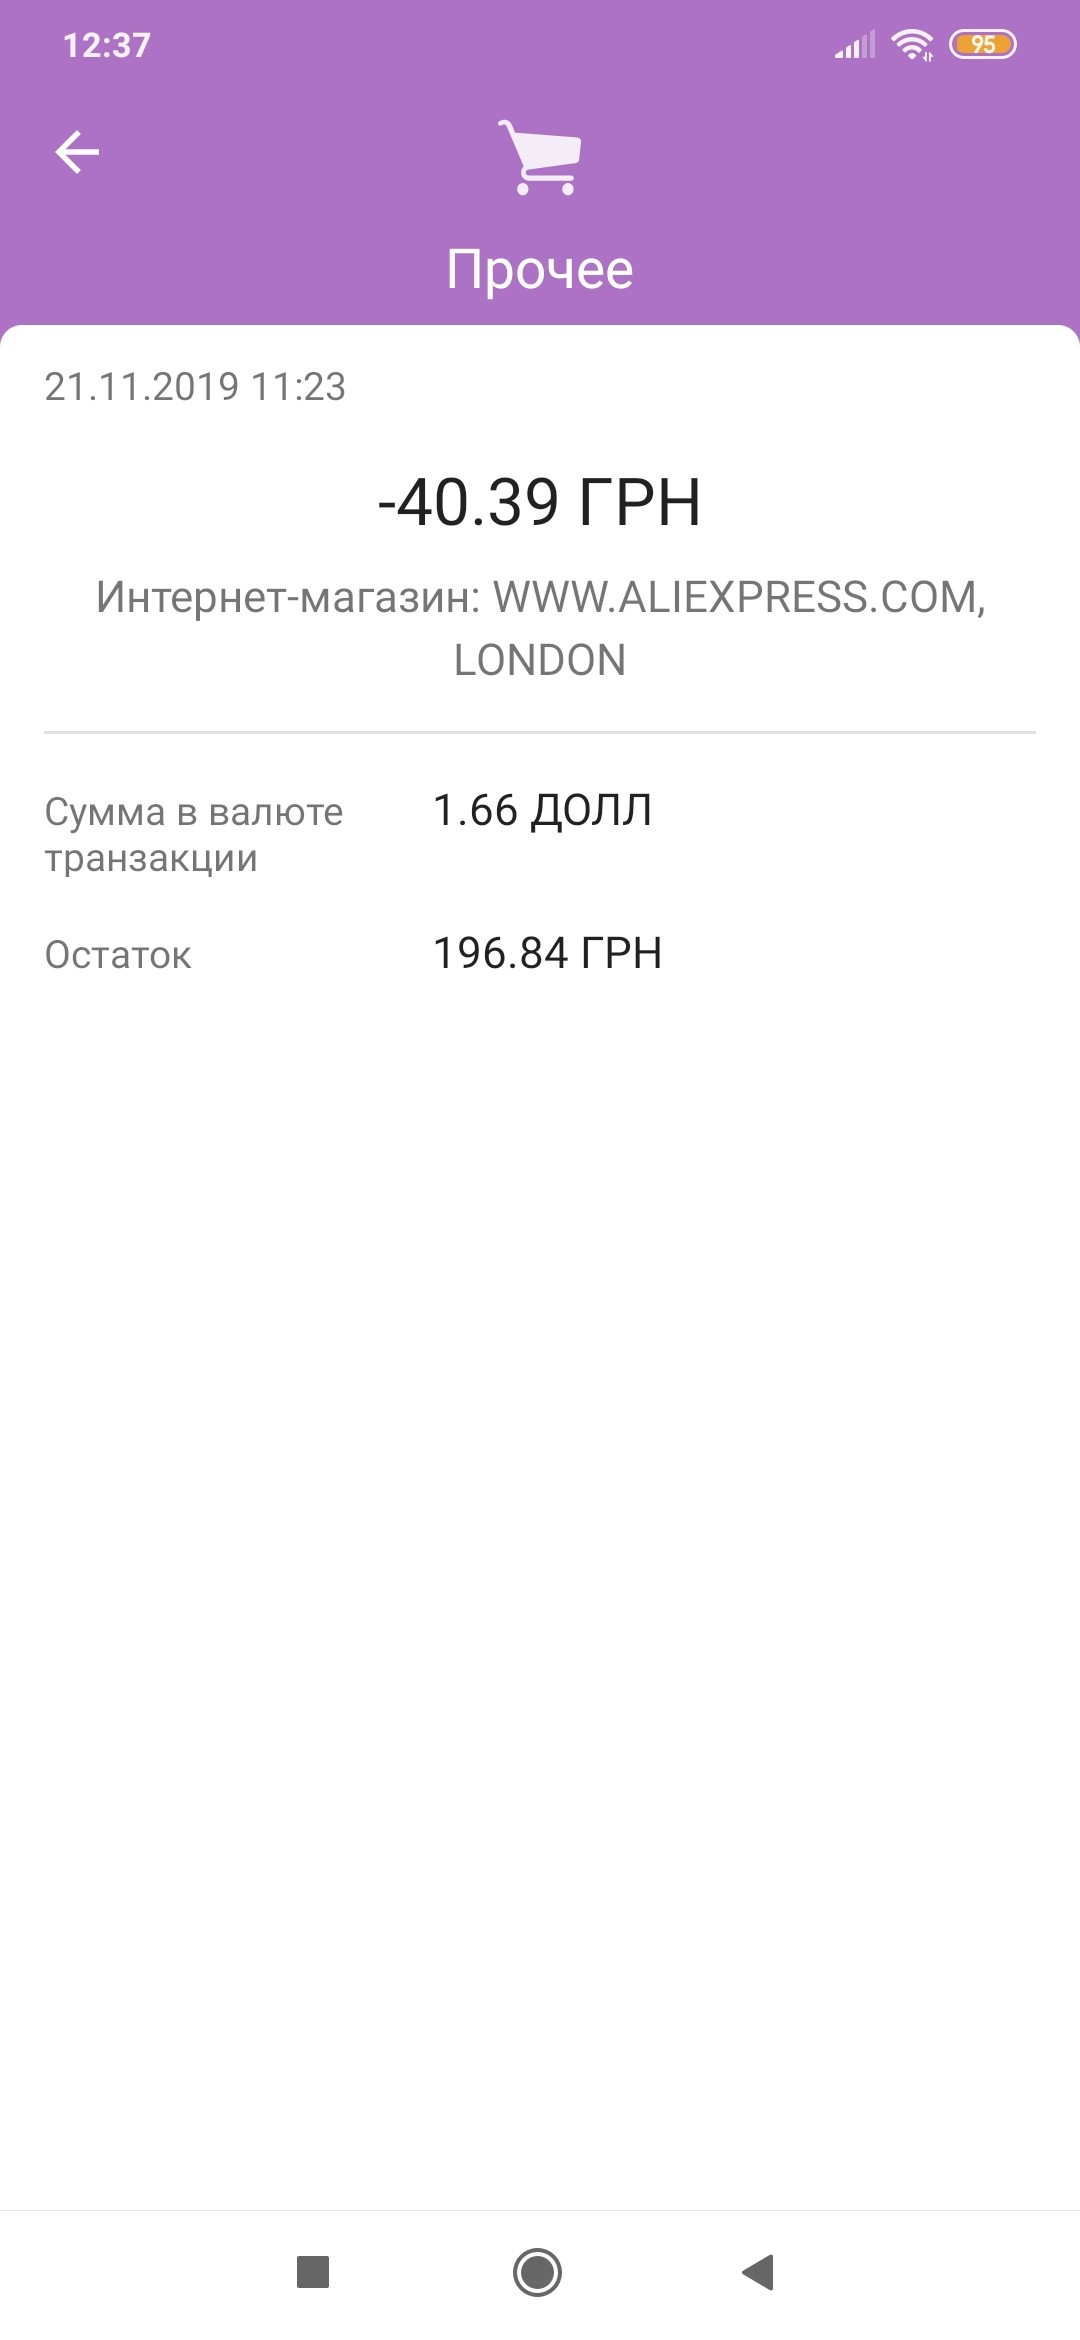 Screenshot_2019-12-30-12-37-36-062_ua.privatbank.ap24.jpg